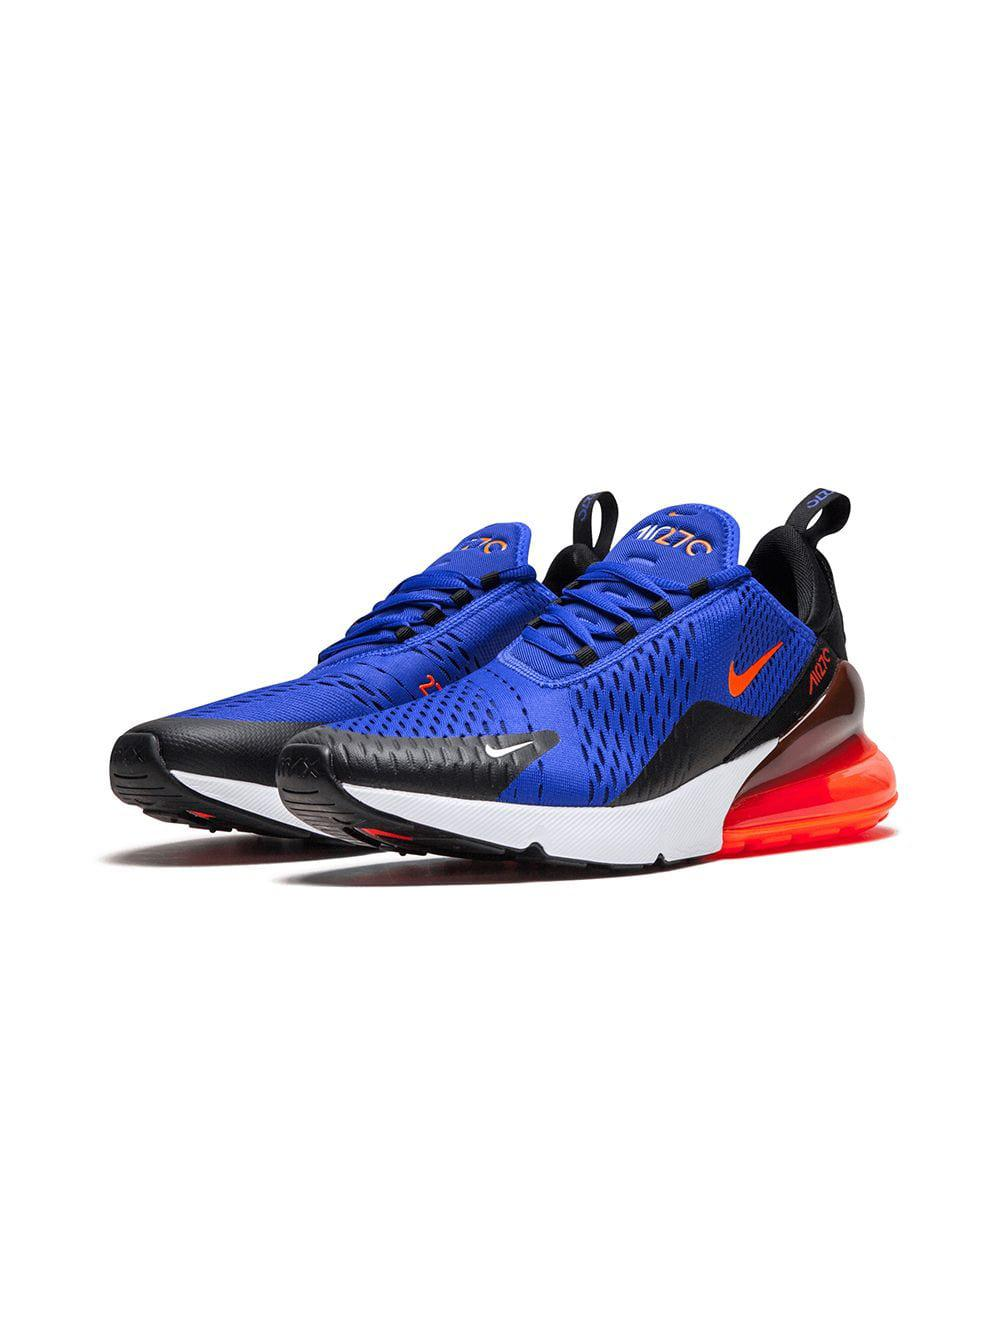 09f31a35d45 Lyst - Nike Air Max 270 Sneakers in Blue for Men - Save 55%